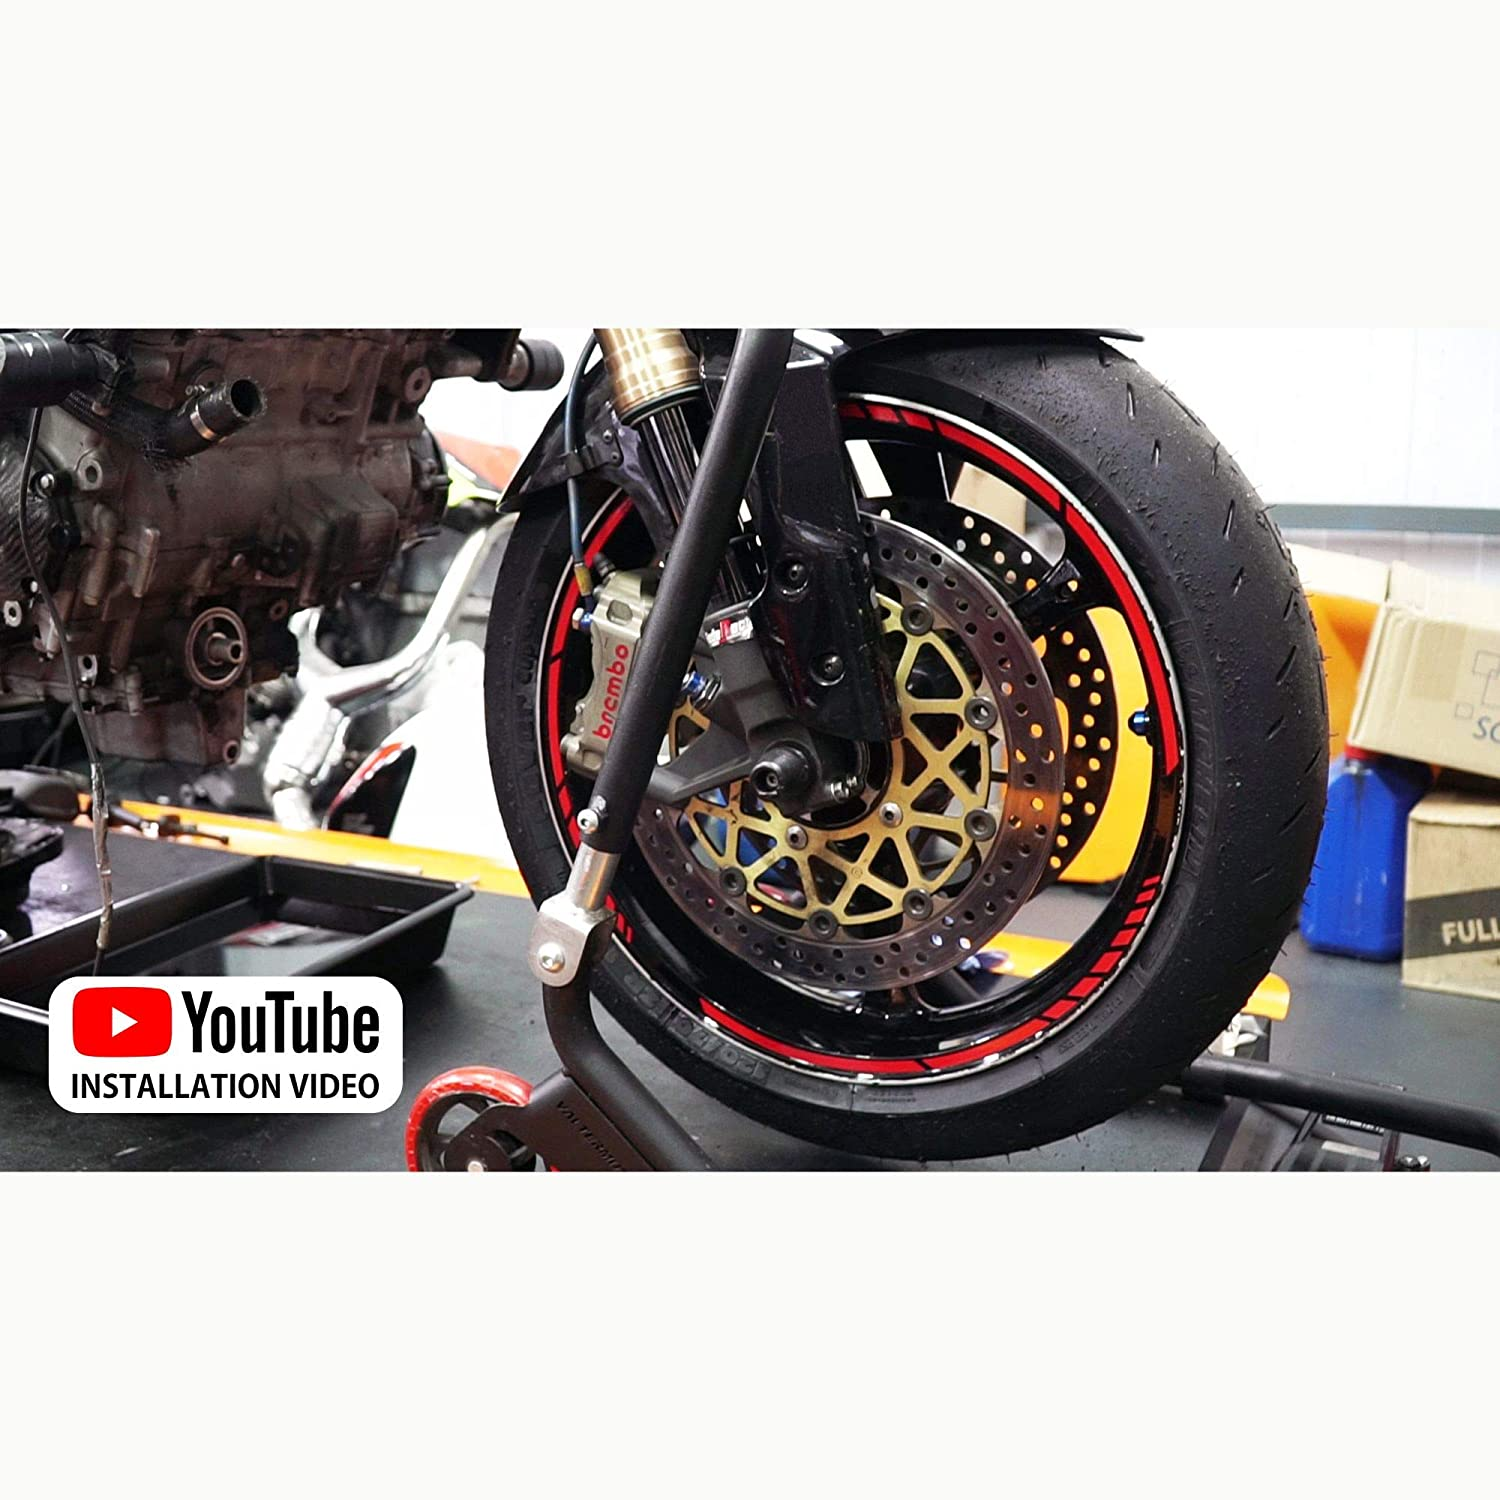 Black Autodomy Stickers Motorcycle Wheel Rims Complete Set for 2 Wheels from 15 to 19 Inches Sport Design